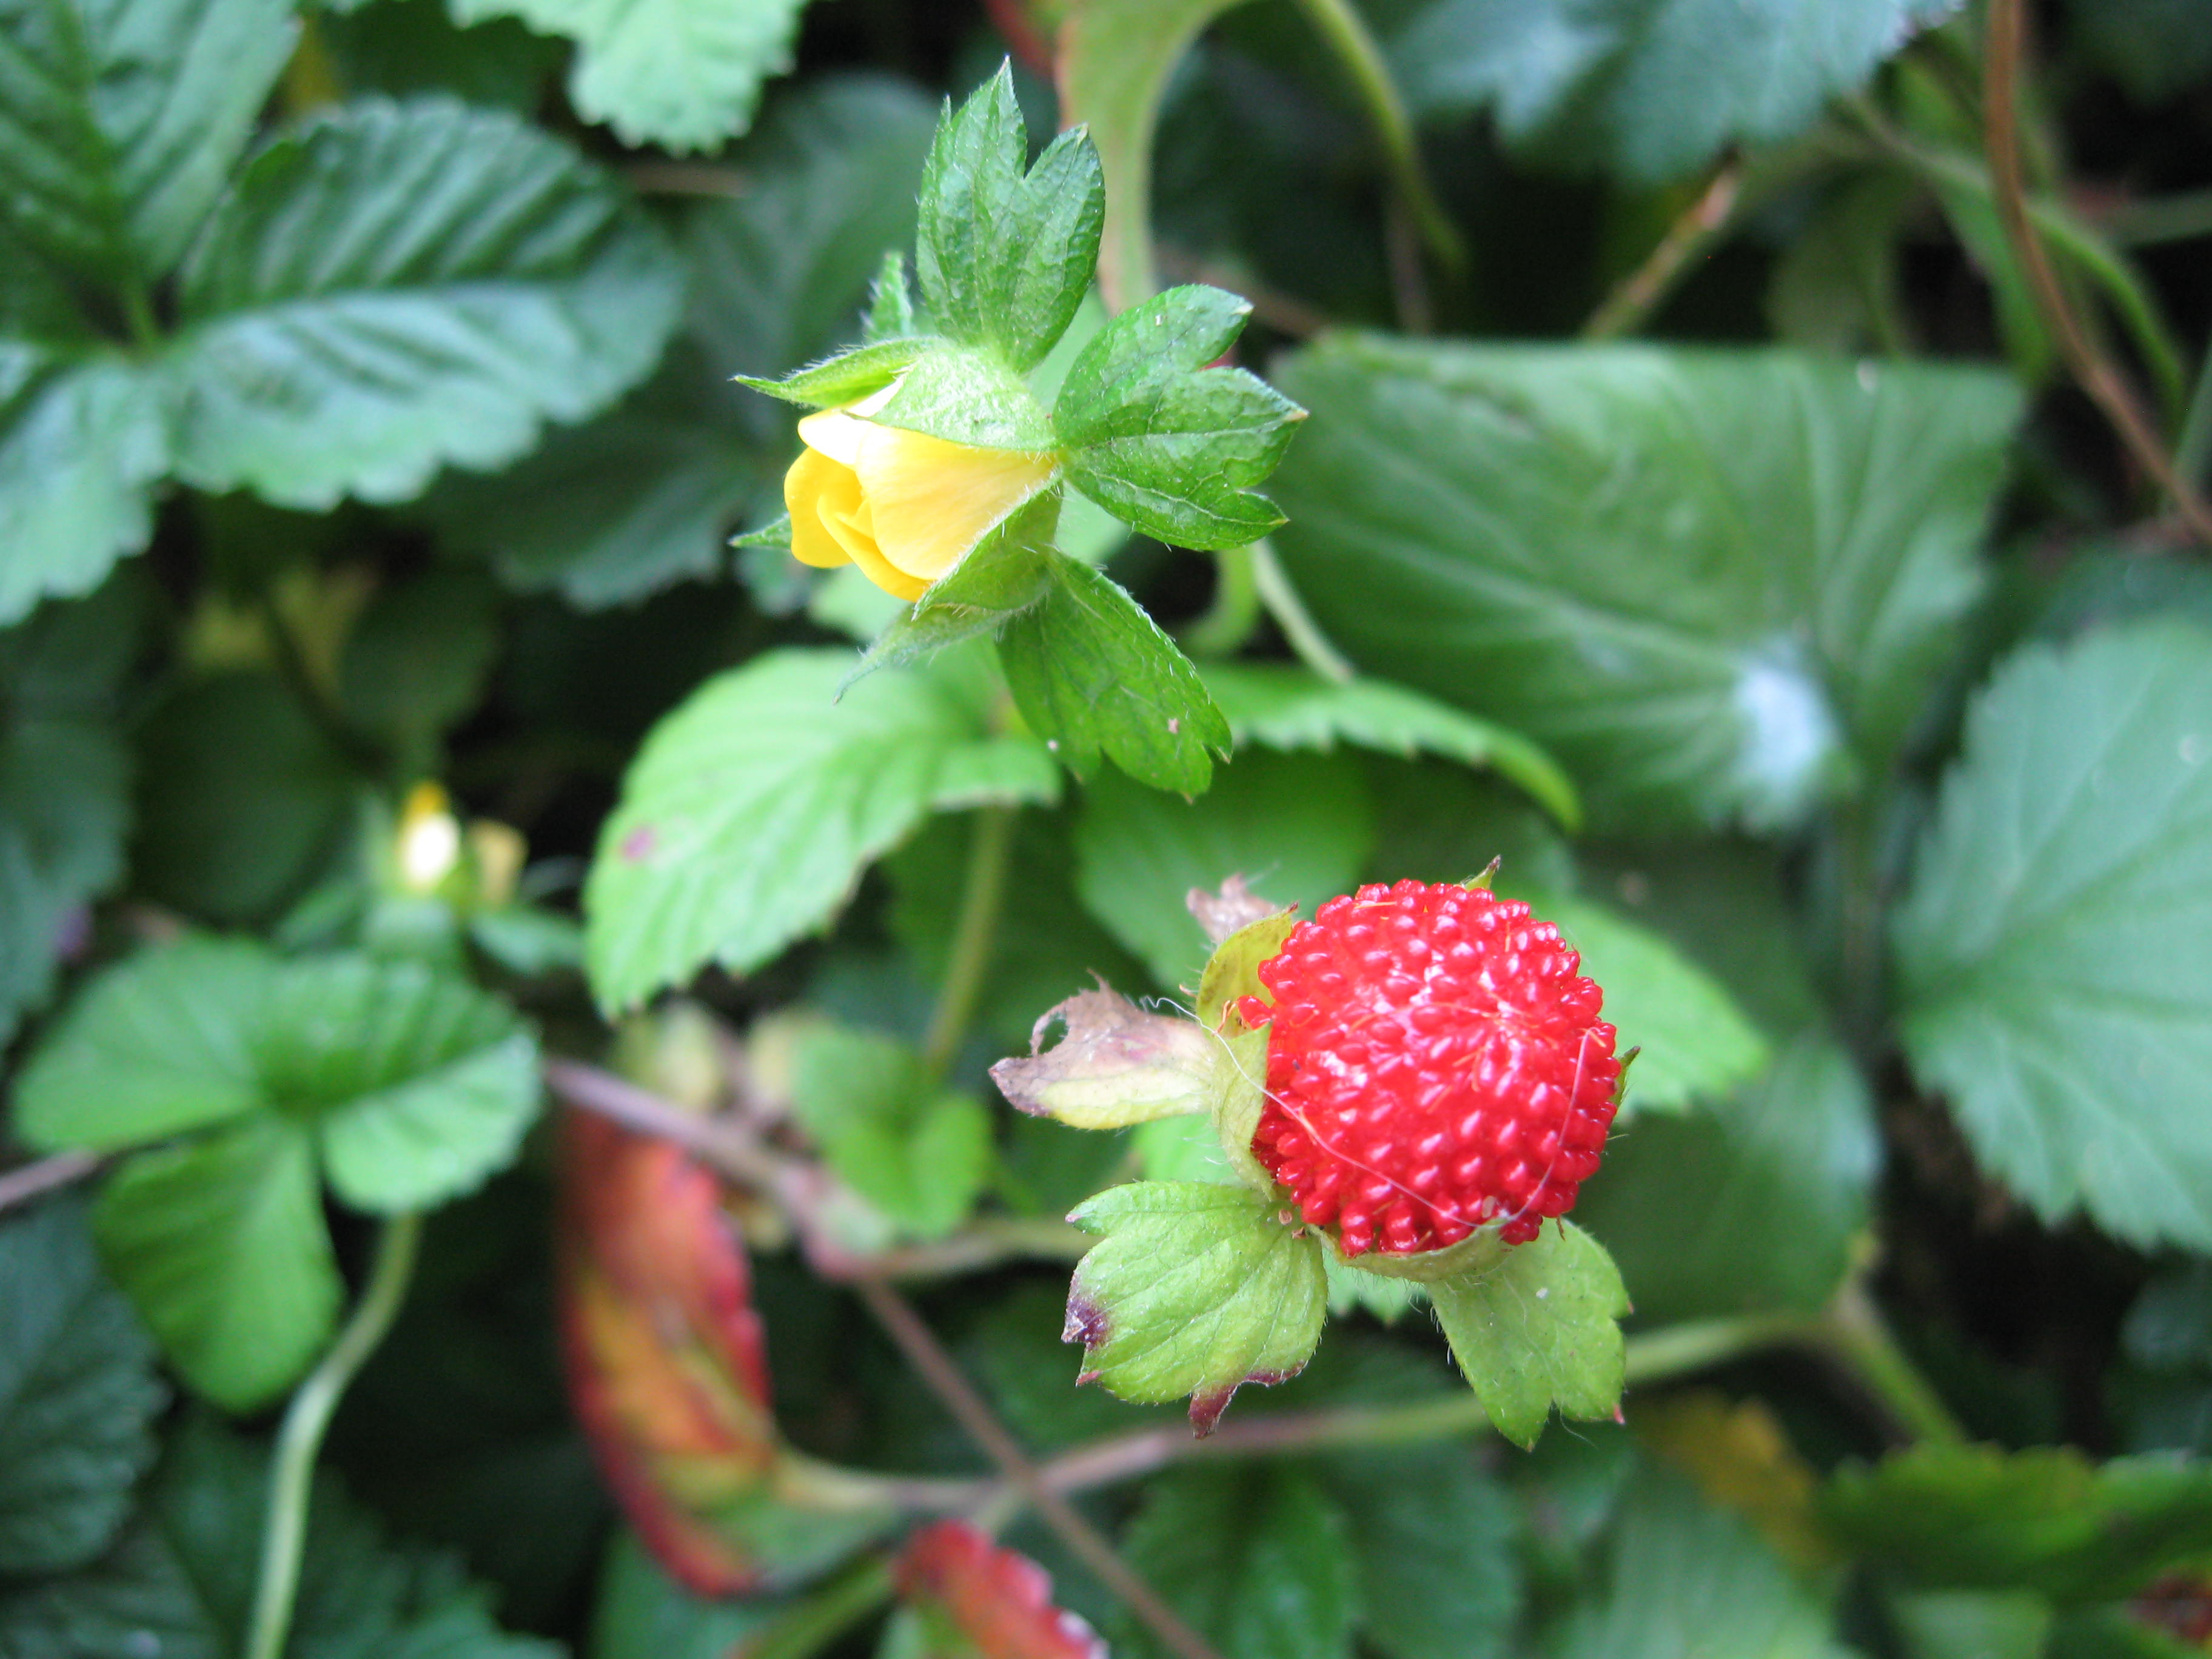 Yellow Flowered Strawberry Plant Lore